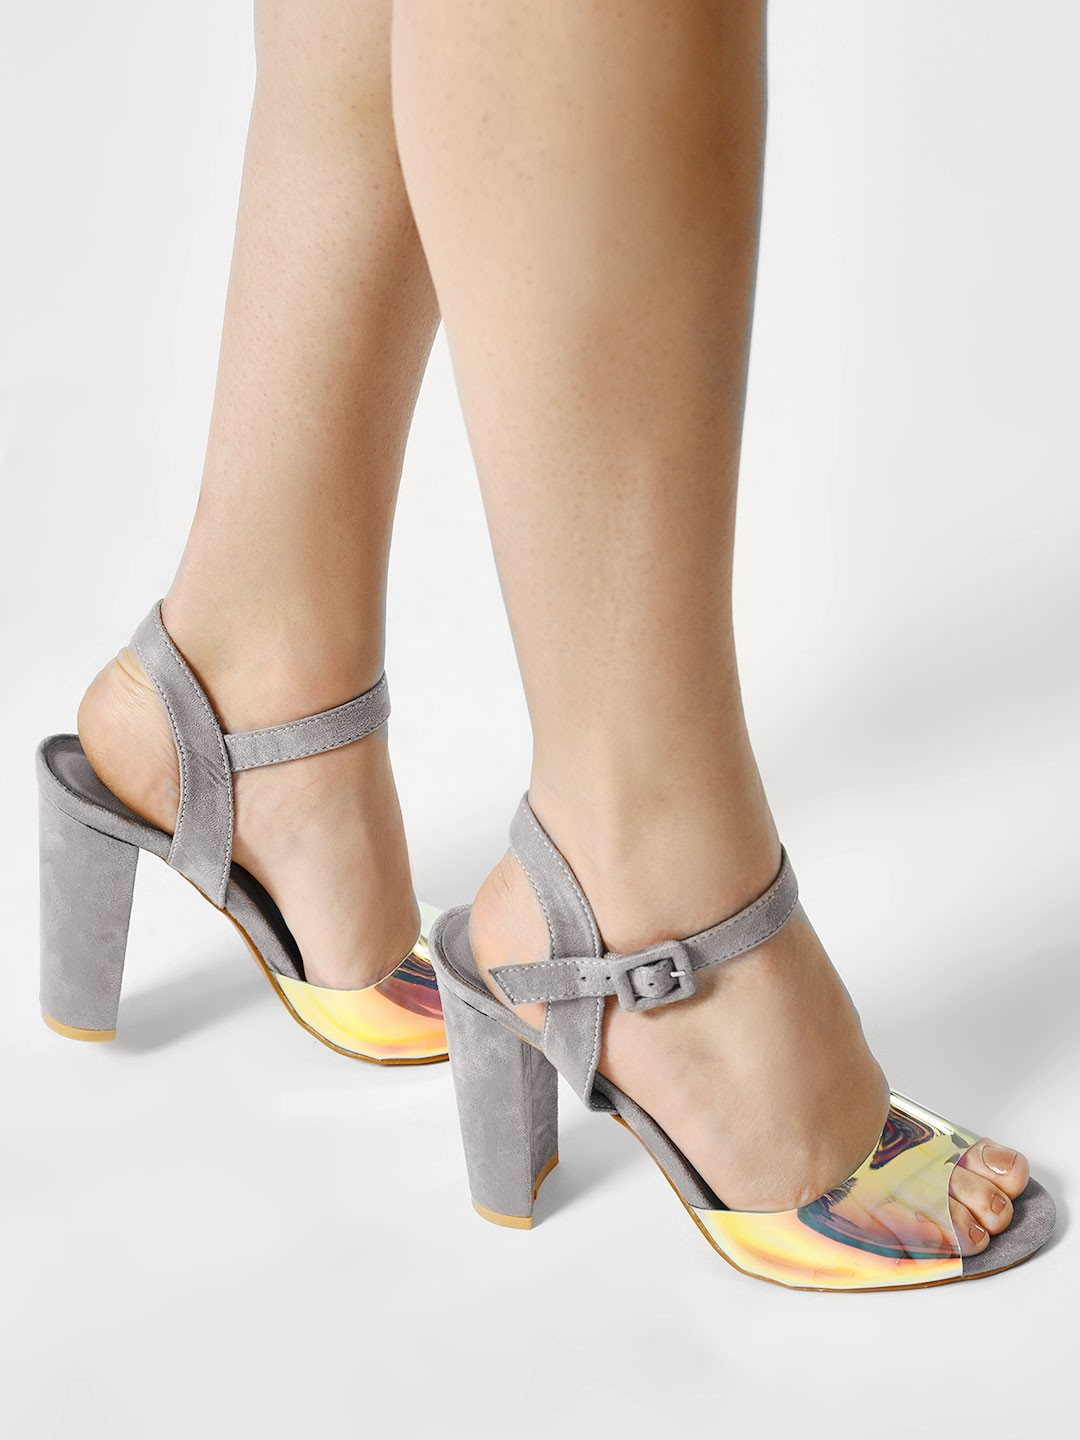 Sole Story Grey Holographic Ankle Strap Heeled Sandals 1